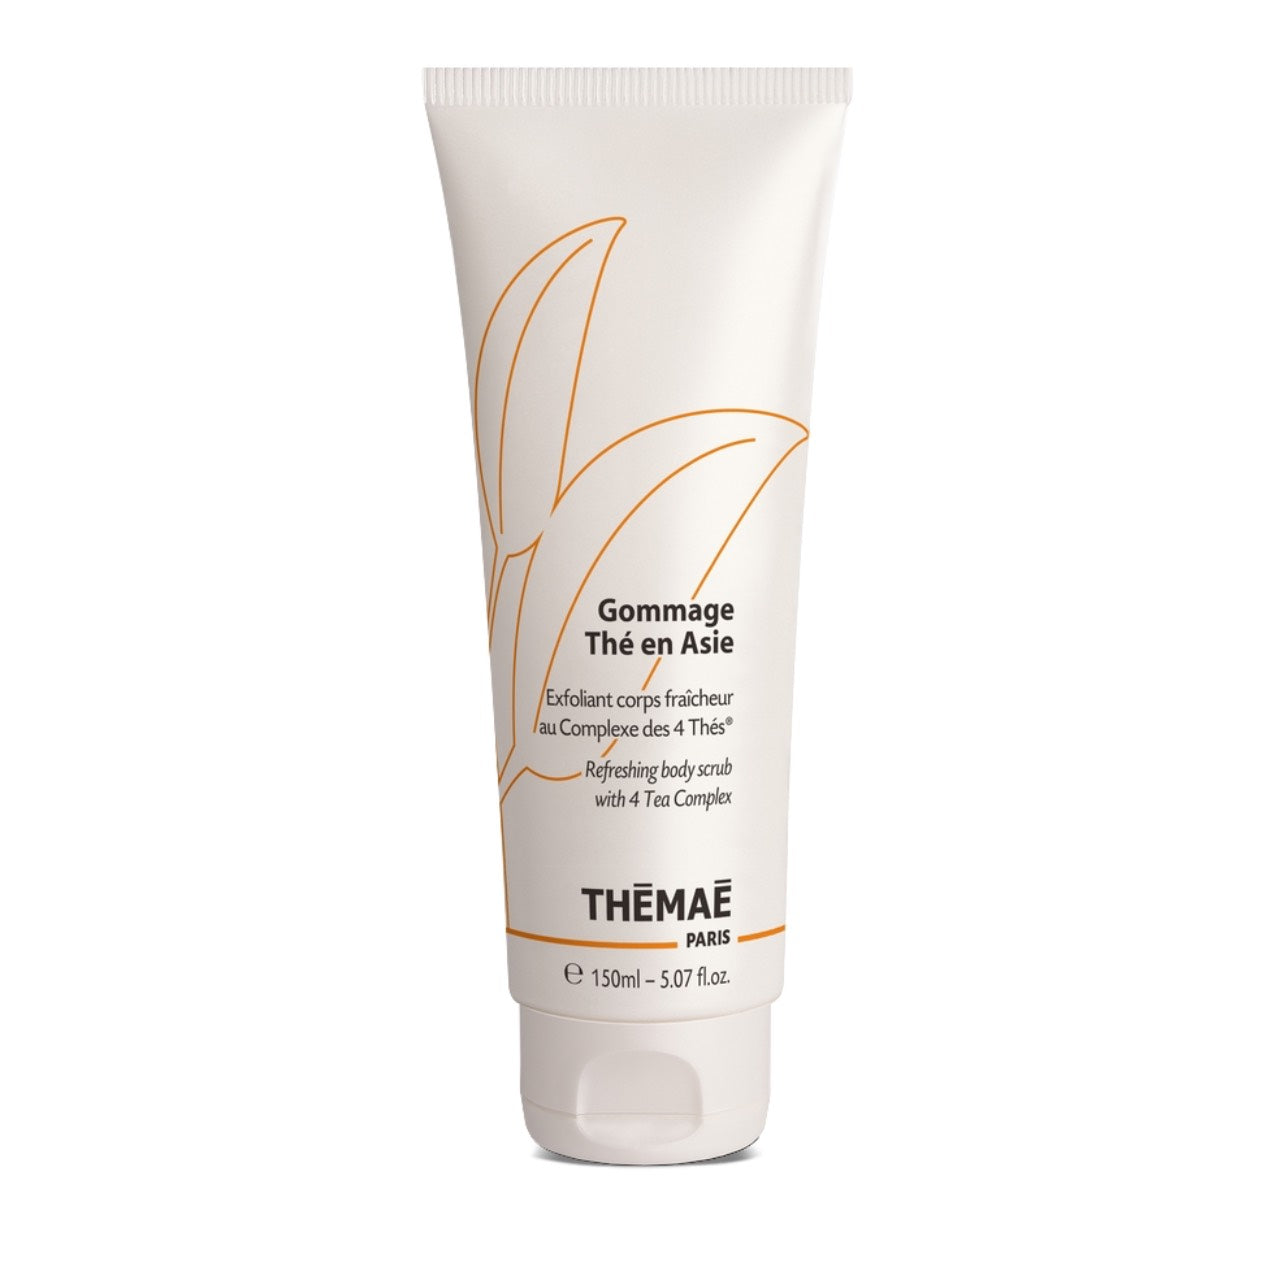 THEMAE Refreshing body scrub